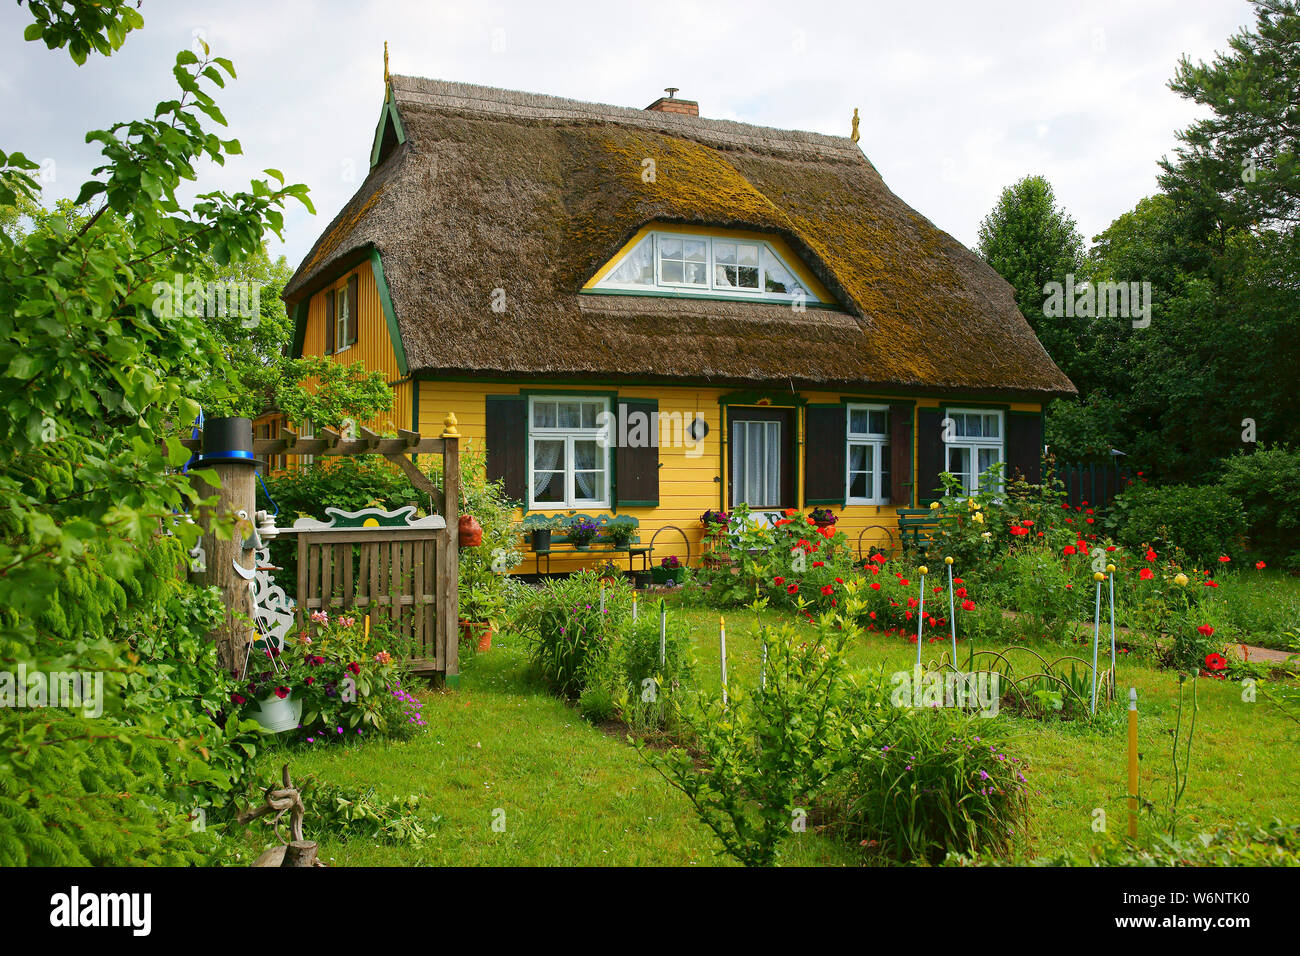 Traditional old house with a thatched roof and garden, Born, Darss, Mecklenburg-Western Pomerania, Germany Stock Photo